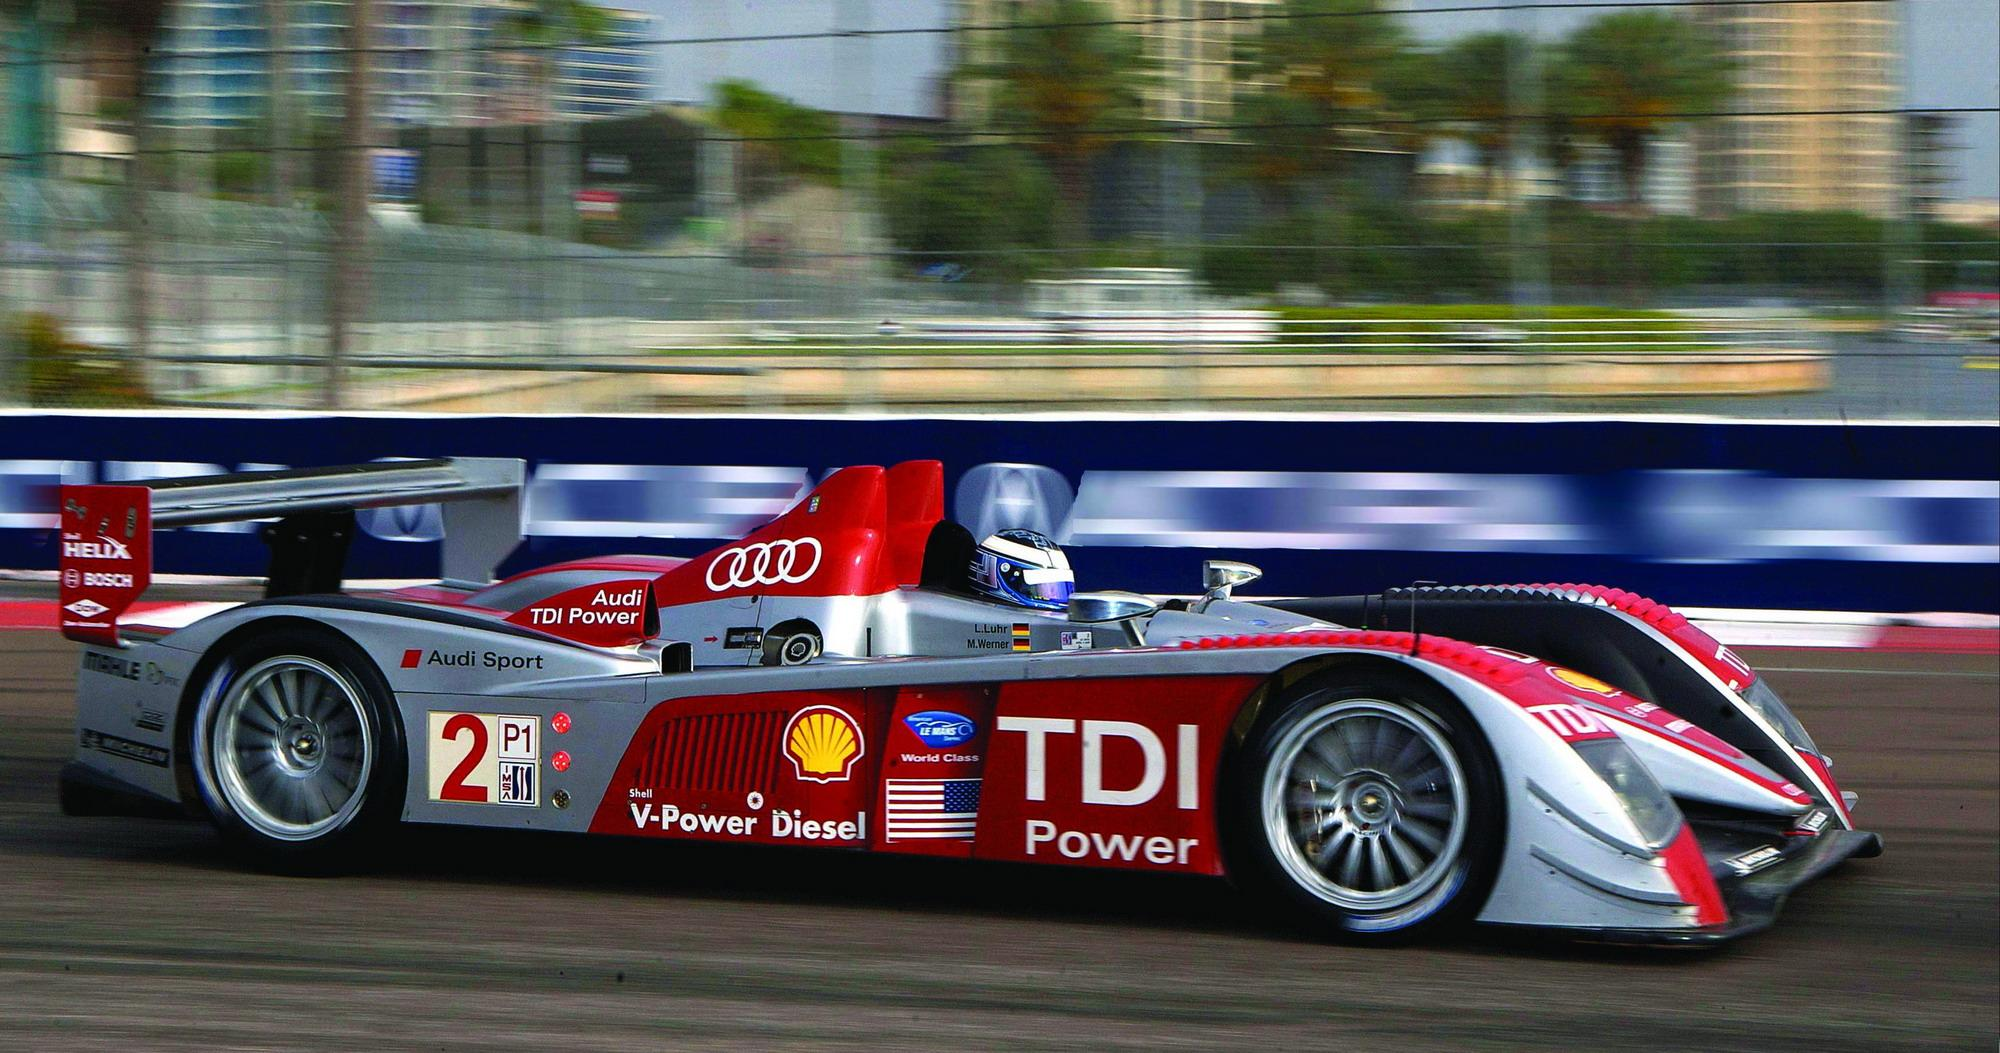 Audi R10 Tdi Race Car Will Use Biofuel Top Speed